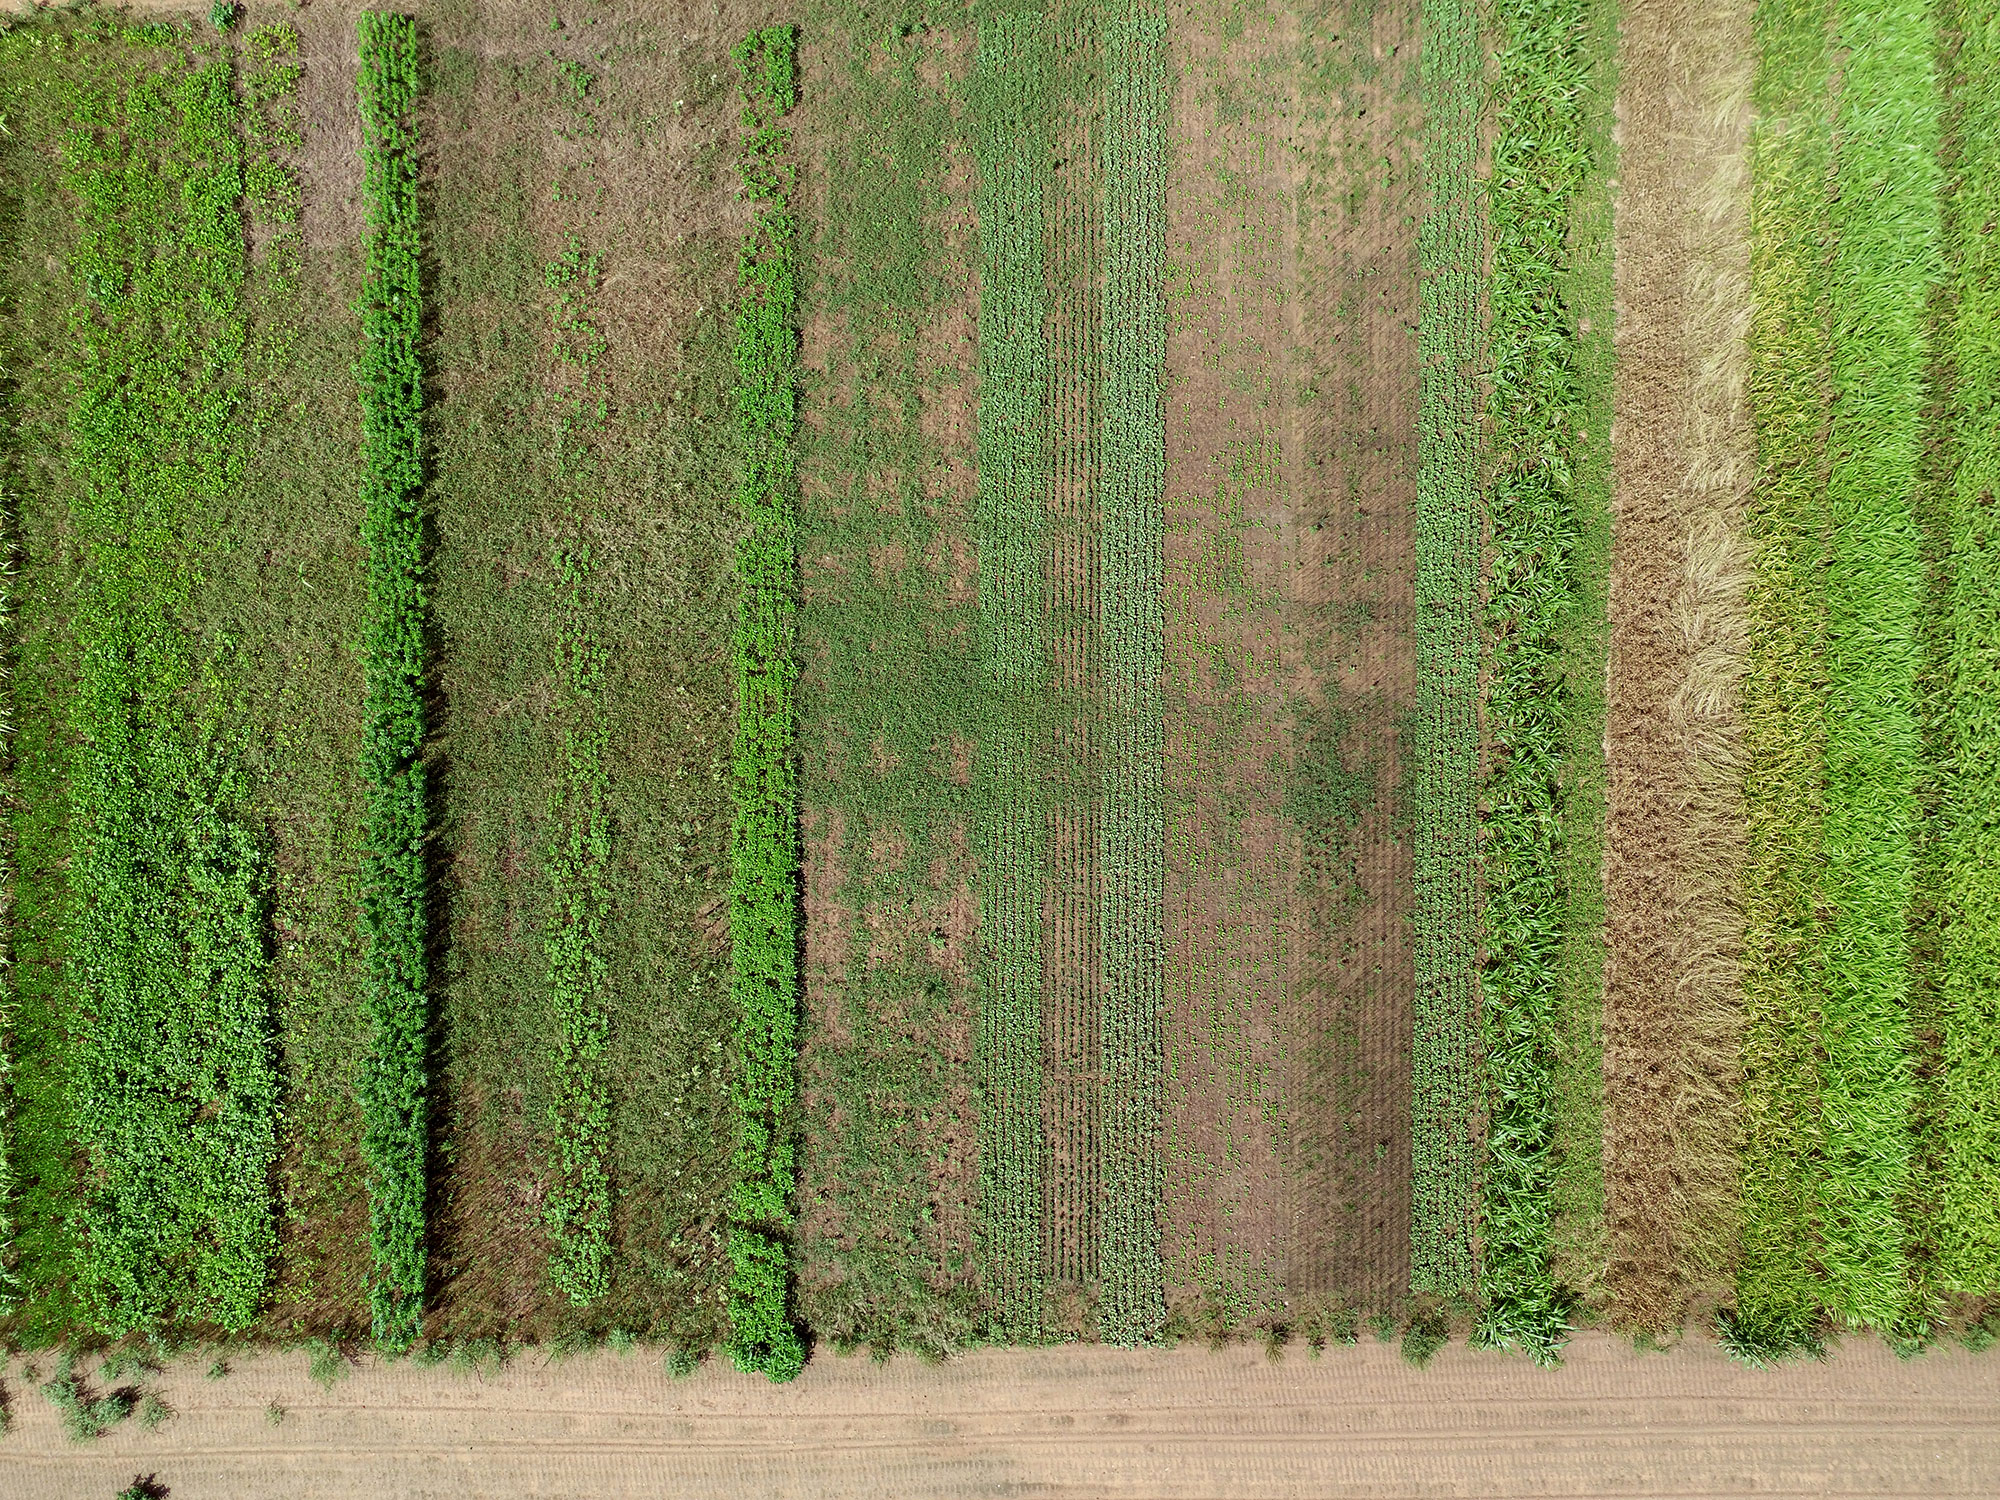 Overhead view of a crop field